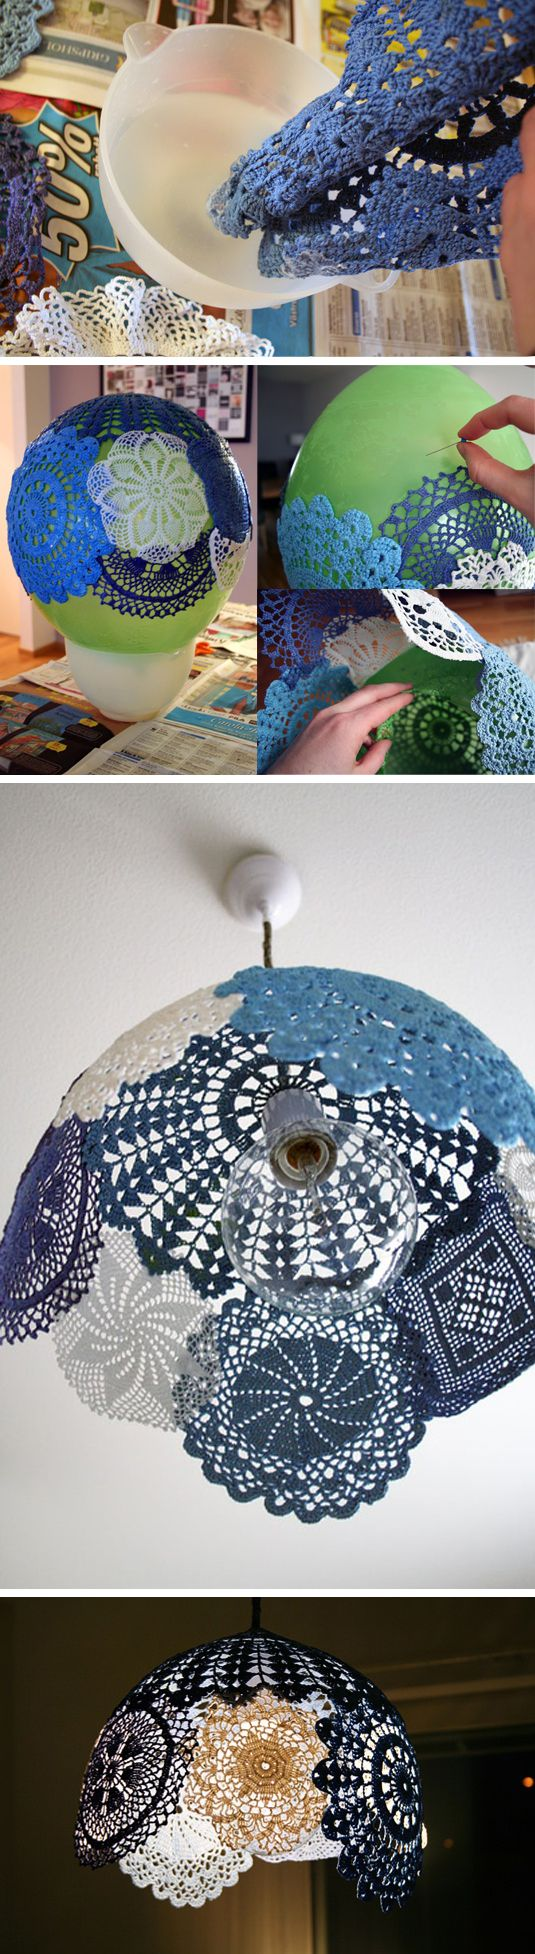 DIY Lamp with Doilies and a Balloon. I like it!